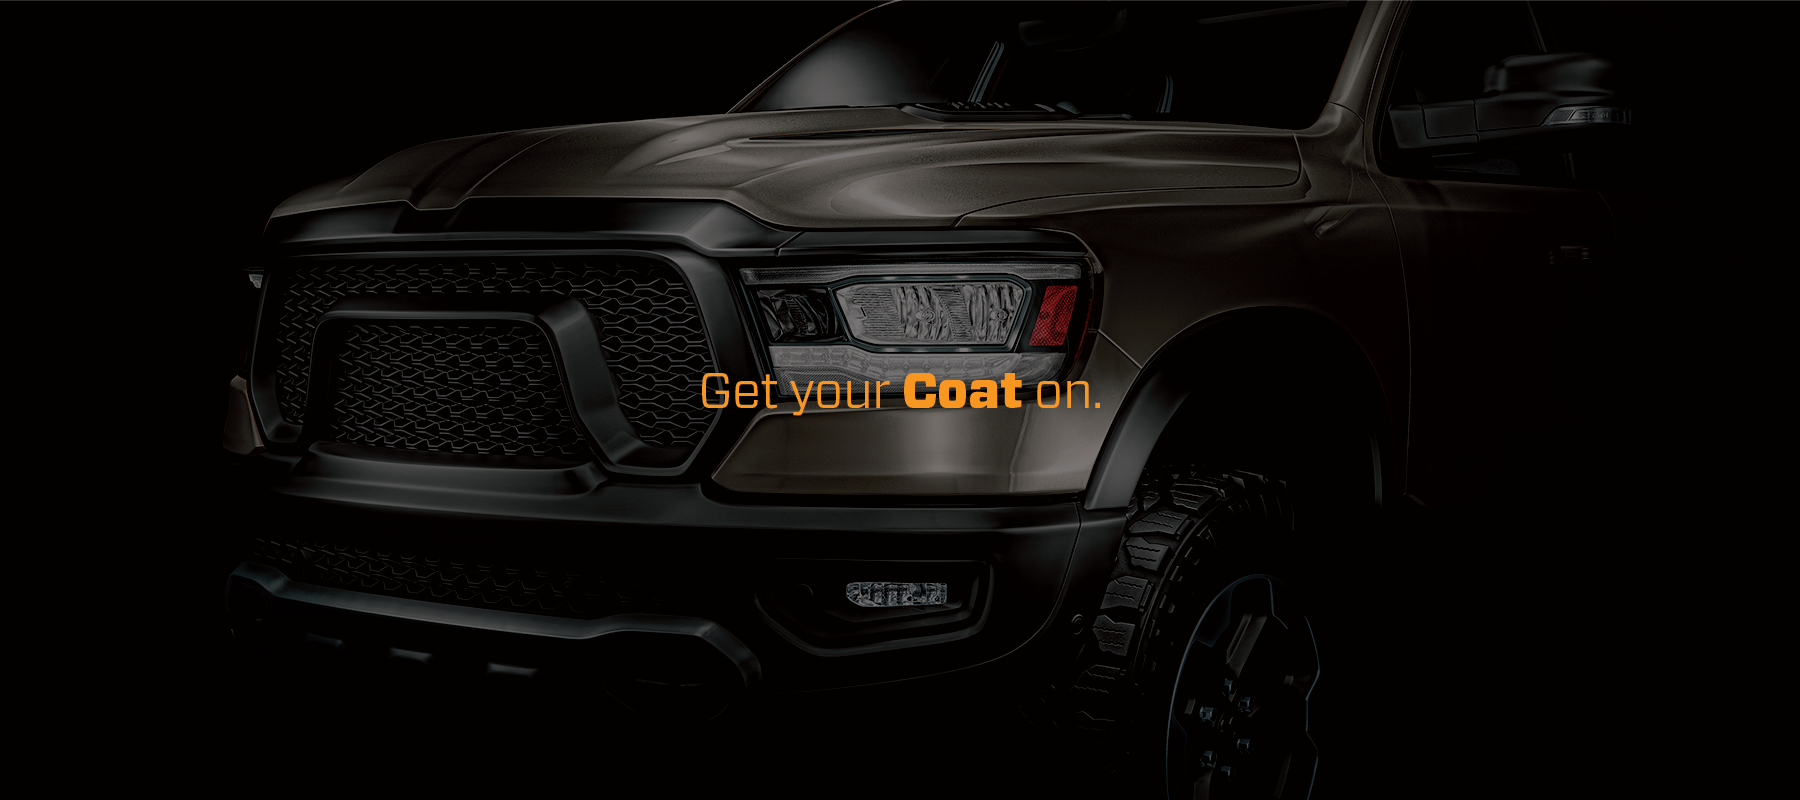 cerakote trim coat get your coat on